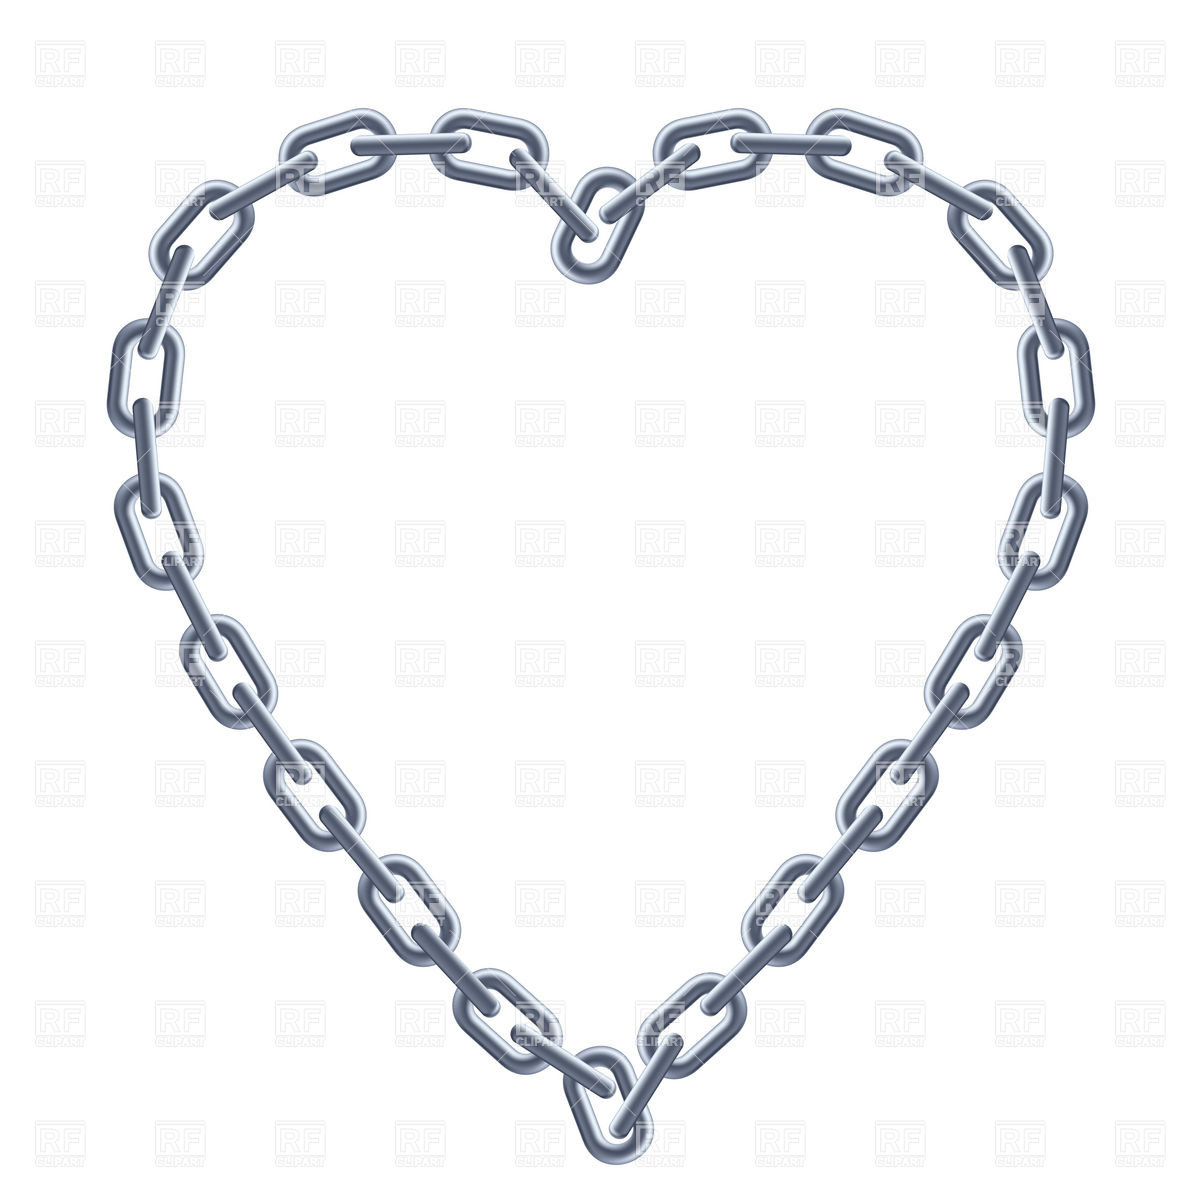 4 link chain clipart picture transparent stock Collection of Chain clipart | Free download best Chain clipart on ... picture transparent stock